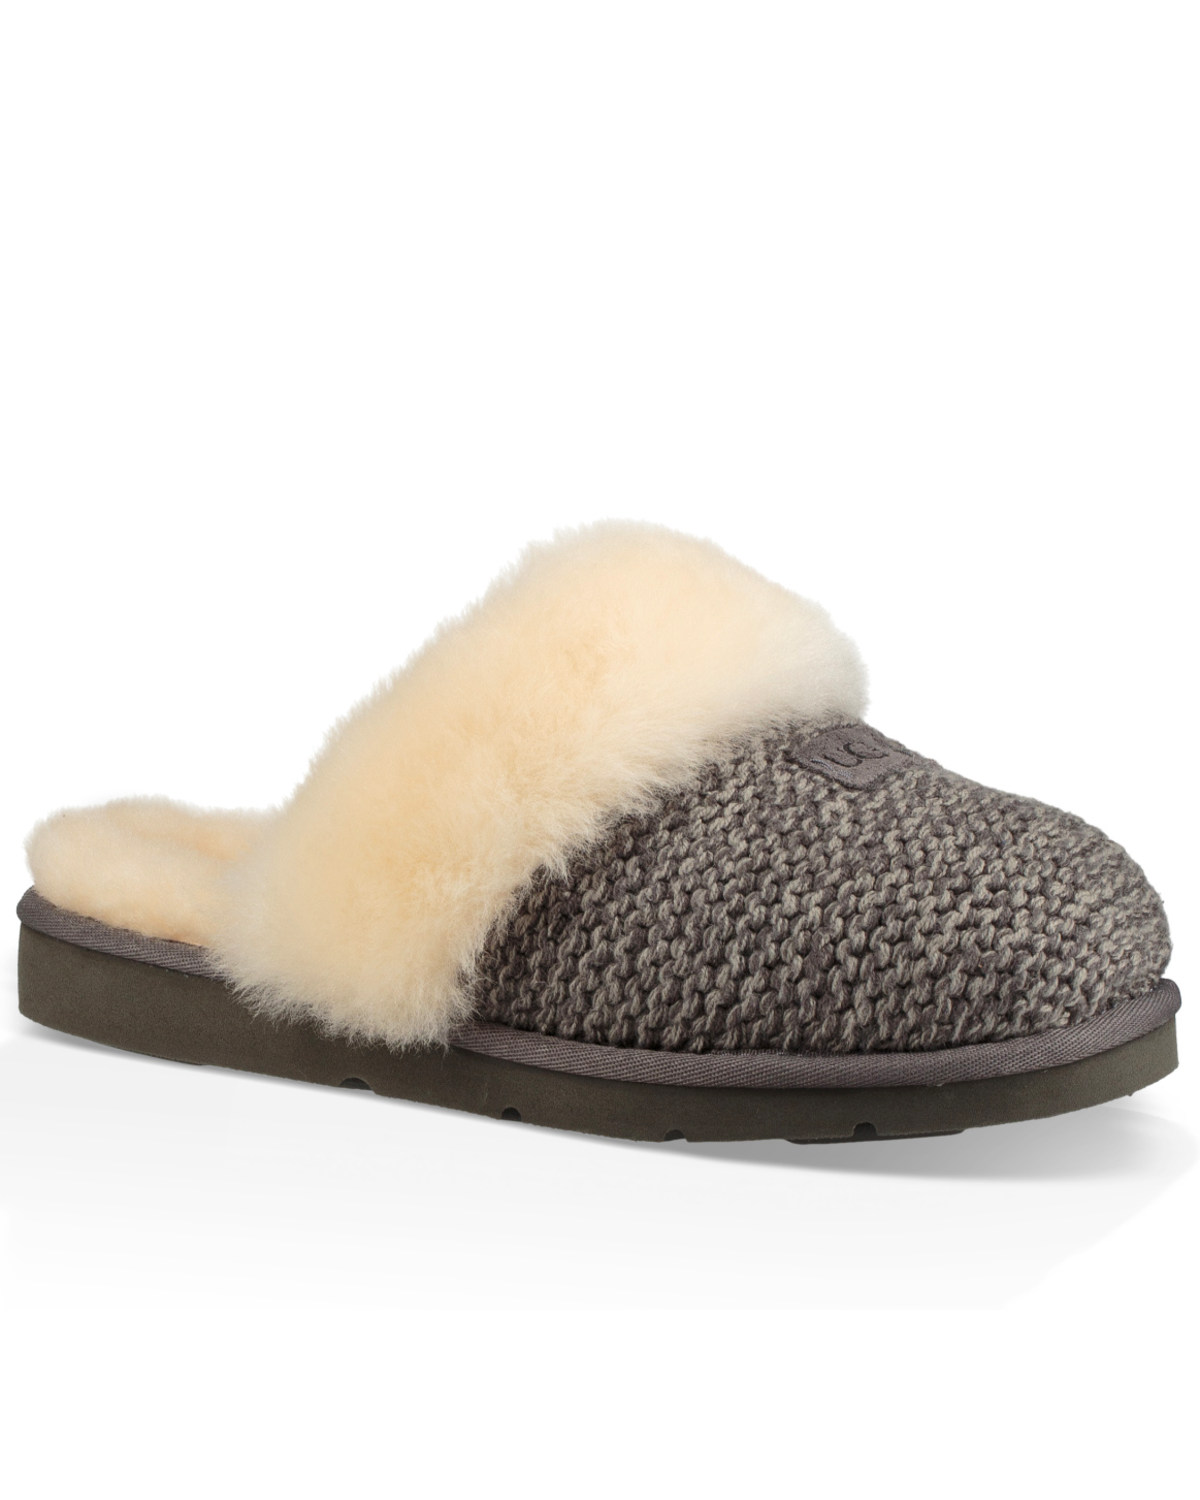 6640c31ce Zoomed Image UGG Women's Cozy Knit Slippers, Grey, ...